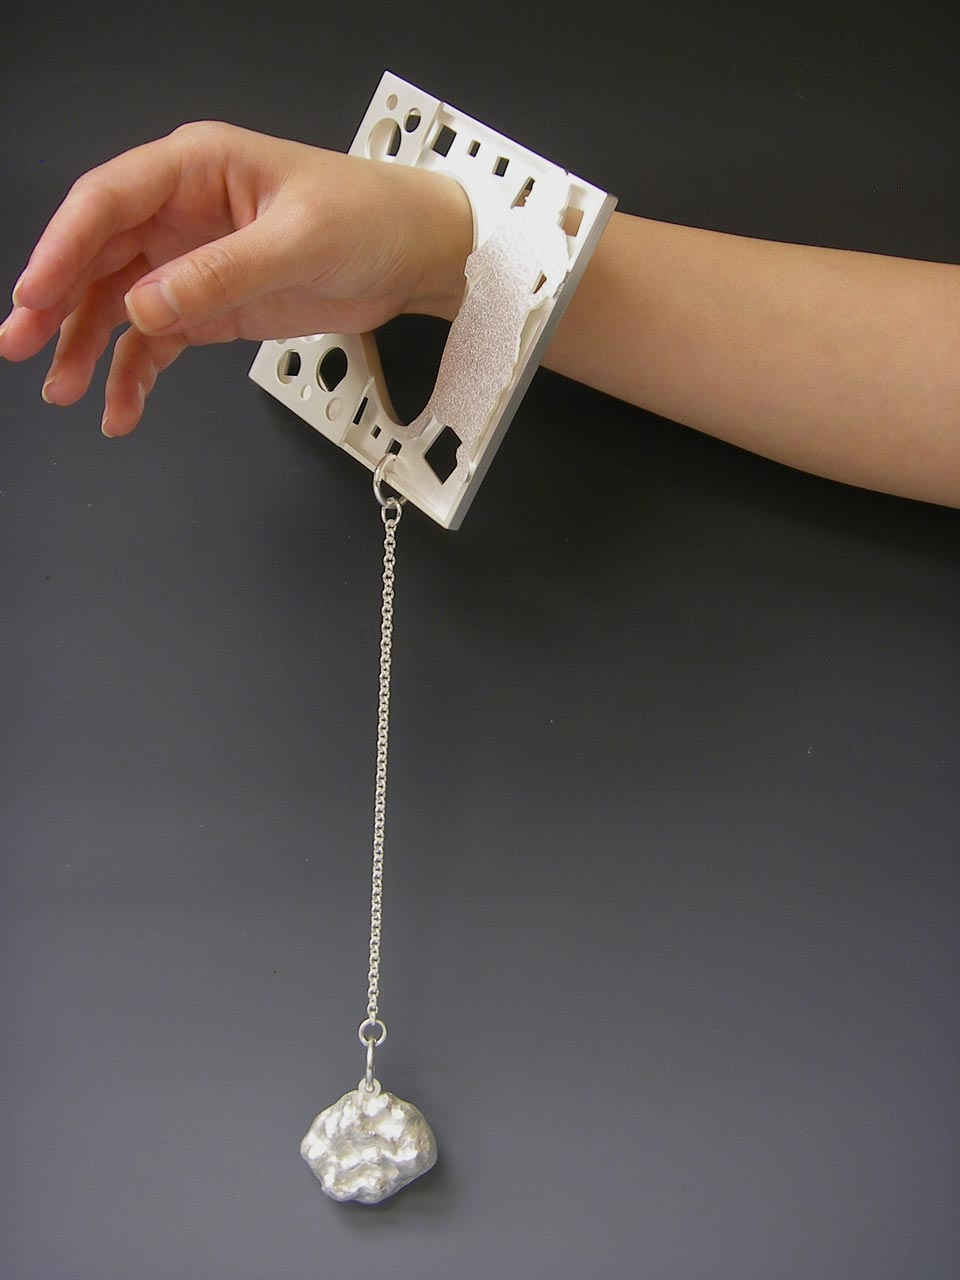 CIA Consider the Consequences Lust Not Love Bracelet #3 by Christina Smith